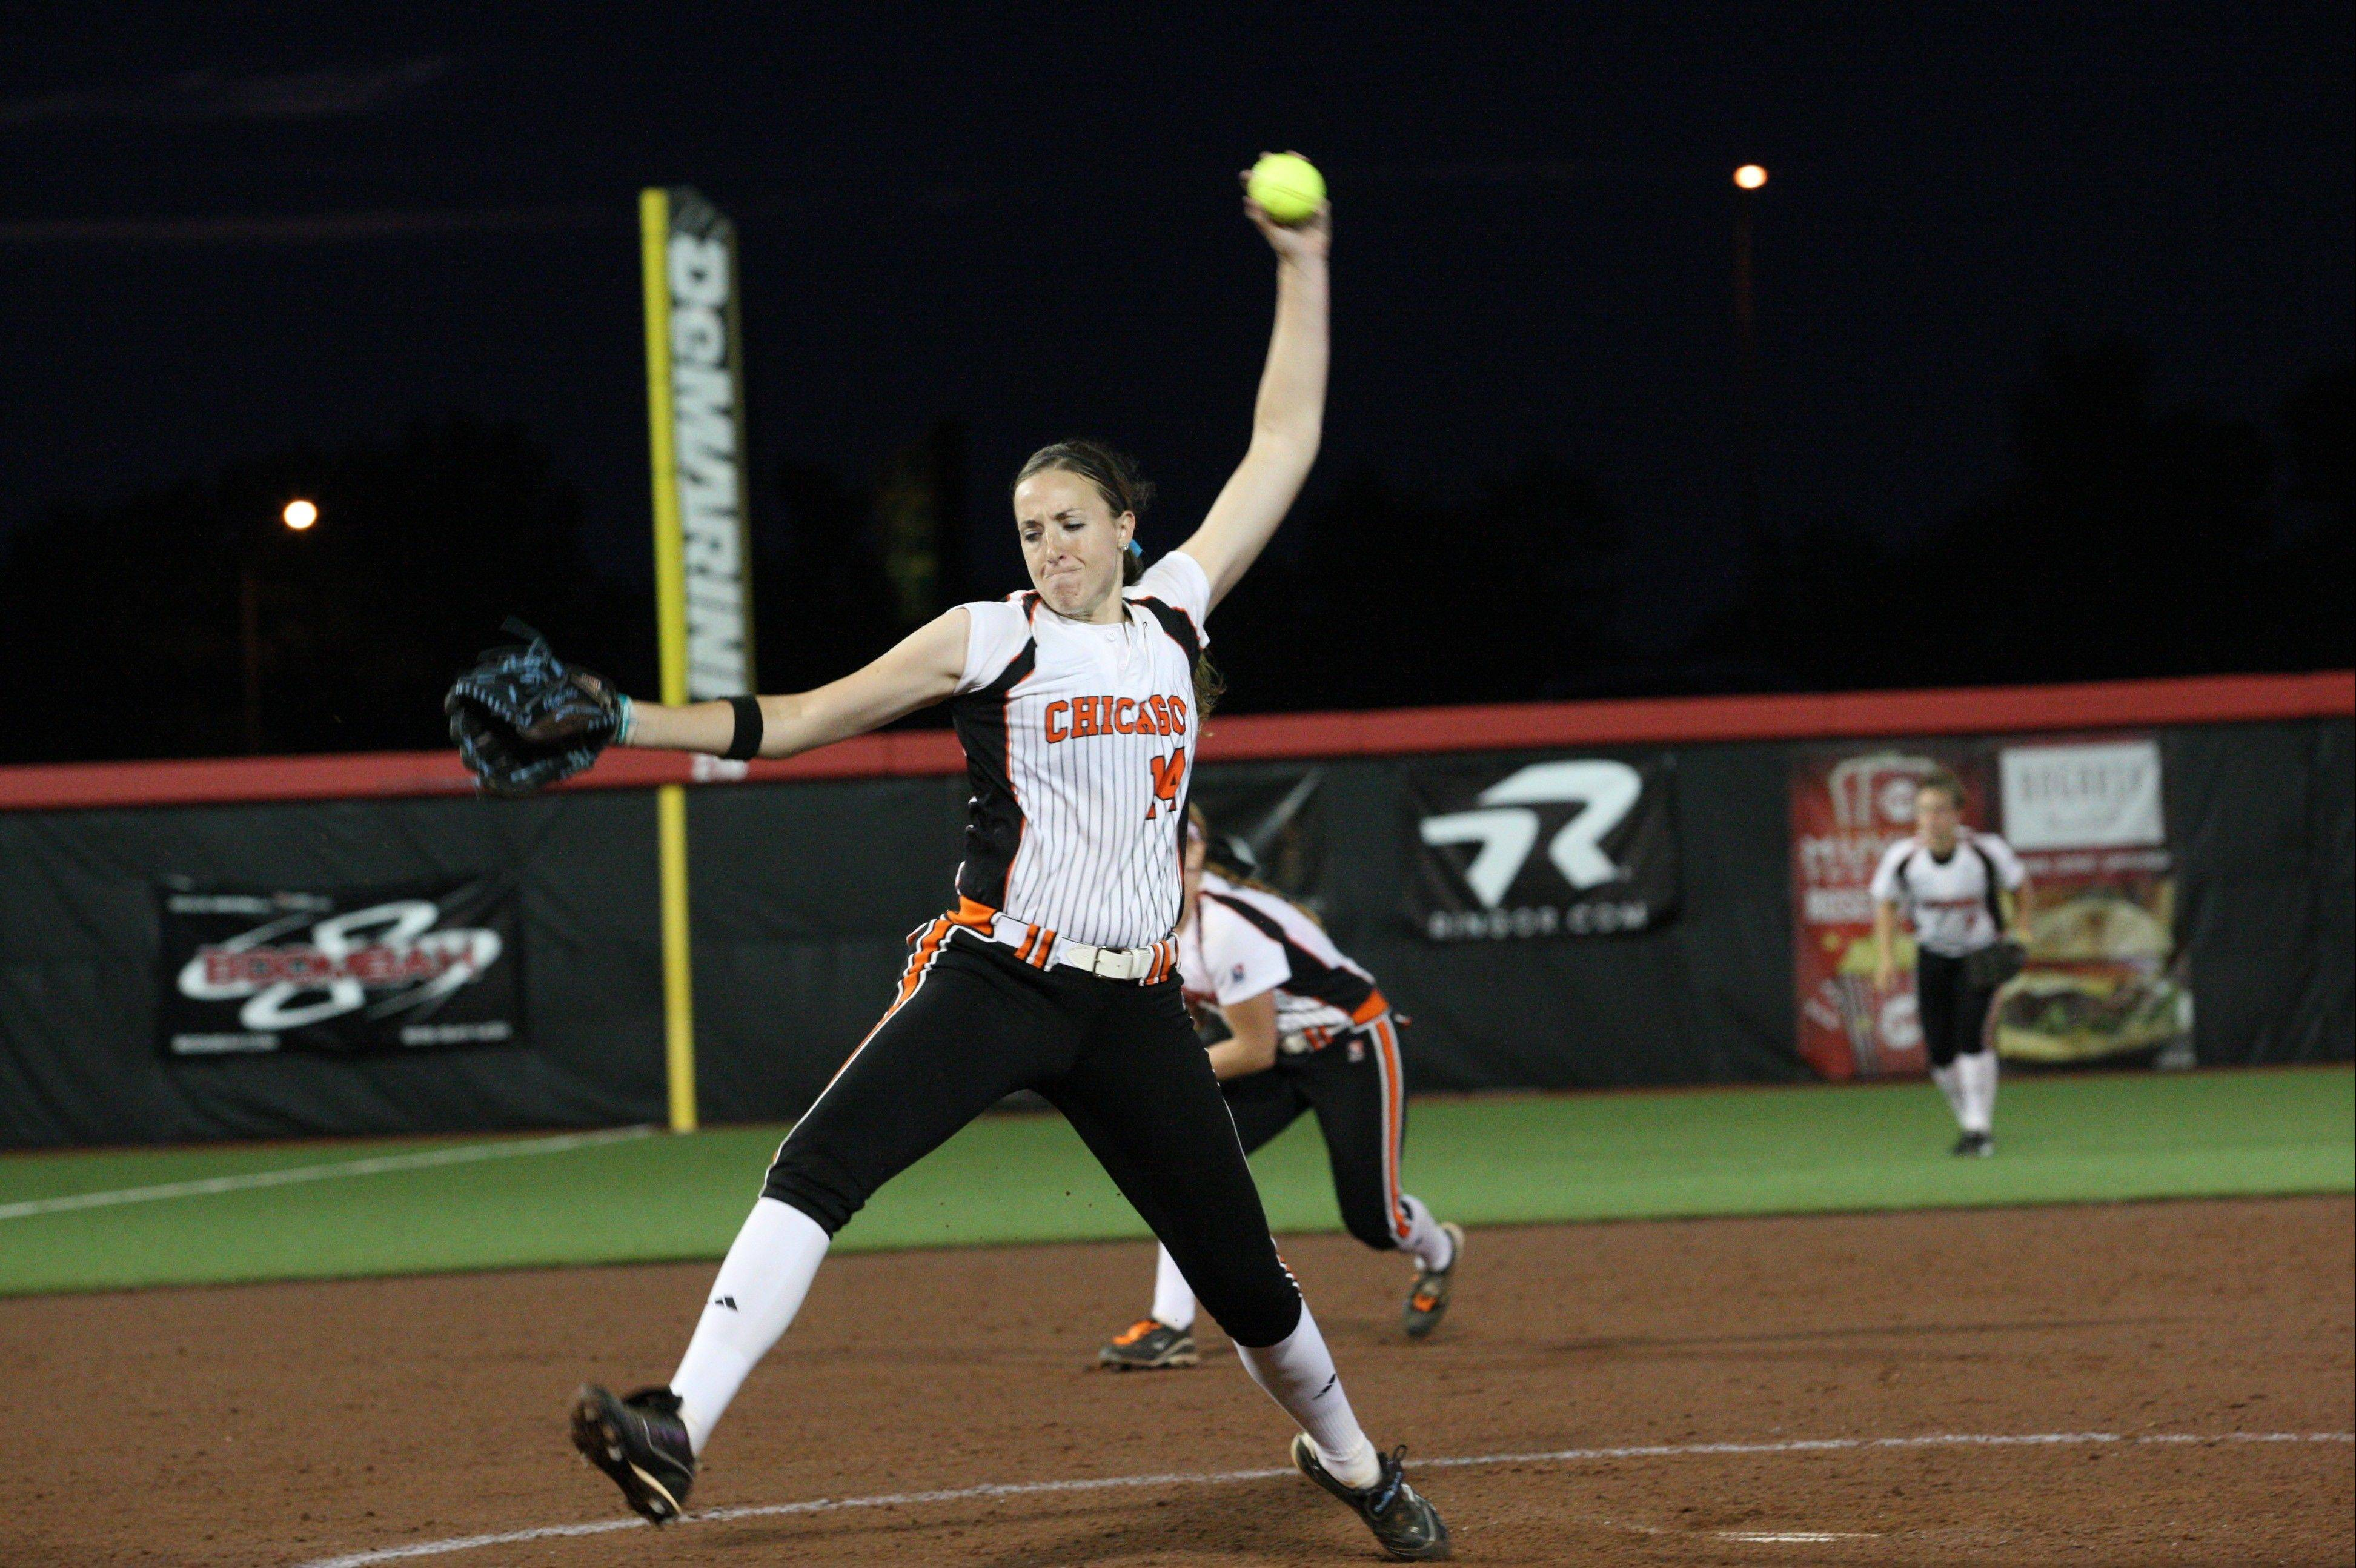 Last season Chicago Bandits pitcher Monica Abbott tossed a perfect game, and later helped her team capture the NPF title in the playoffs.